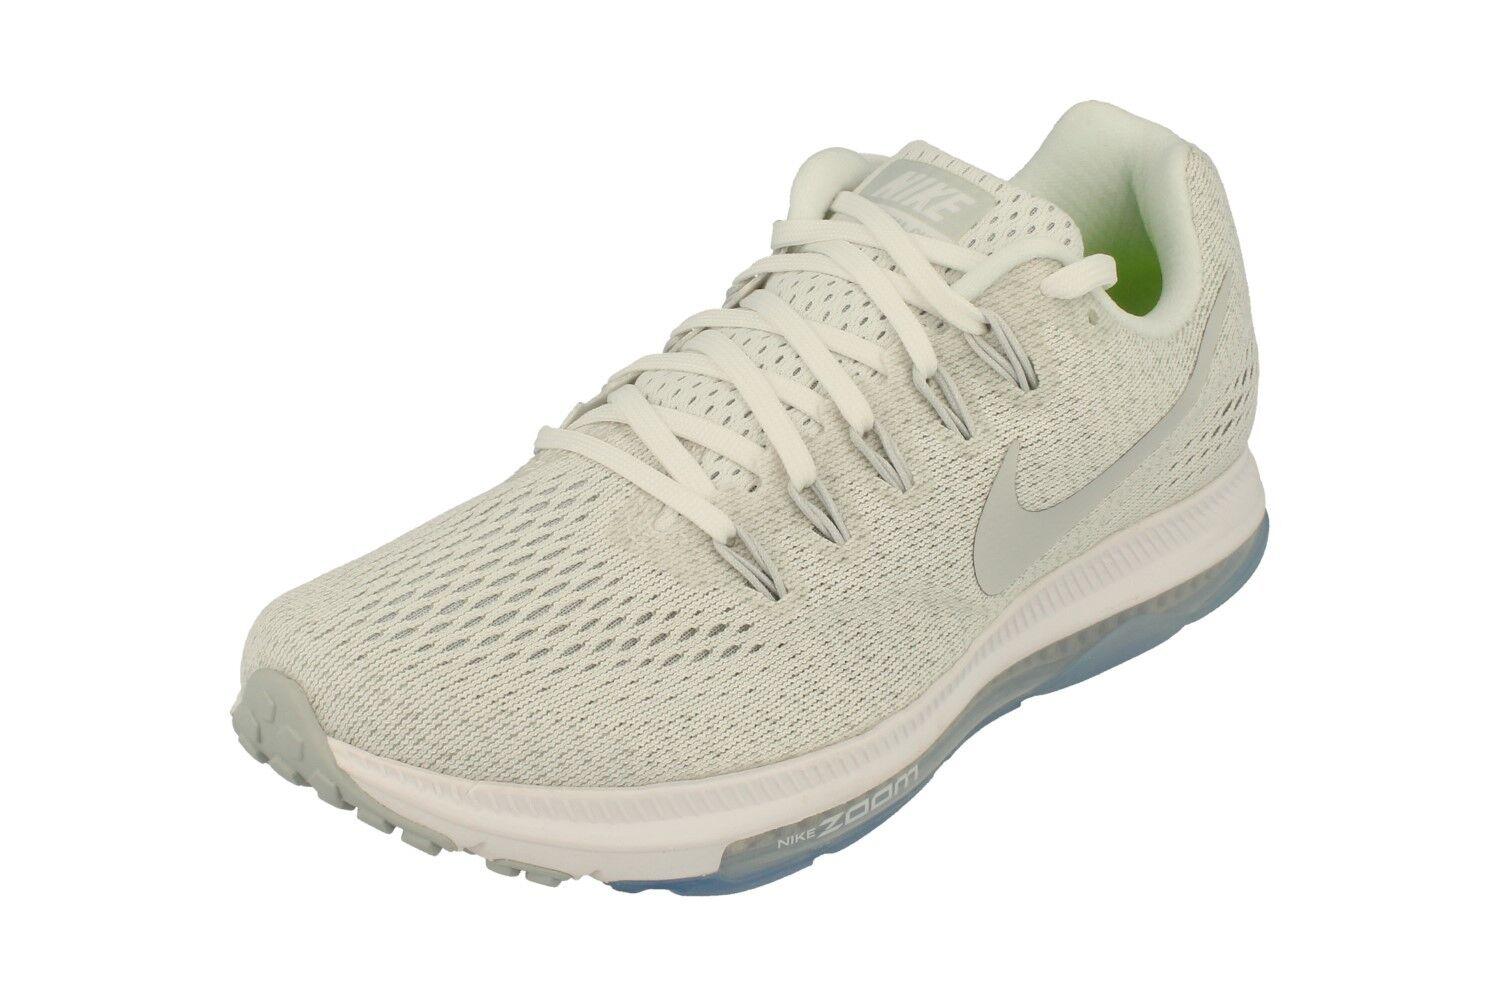 Nike mujer Zoom All Out Low Running Trainers 878671 zapatillas zapatos 101